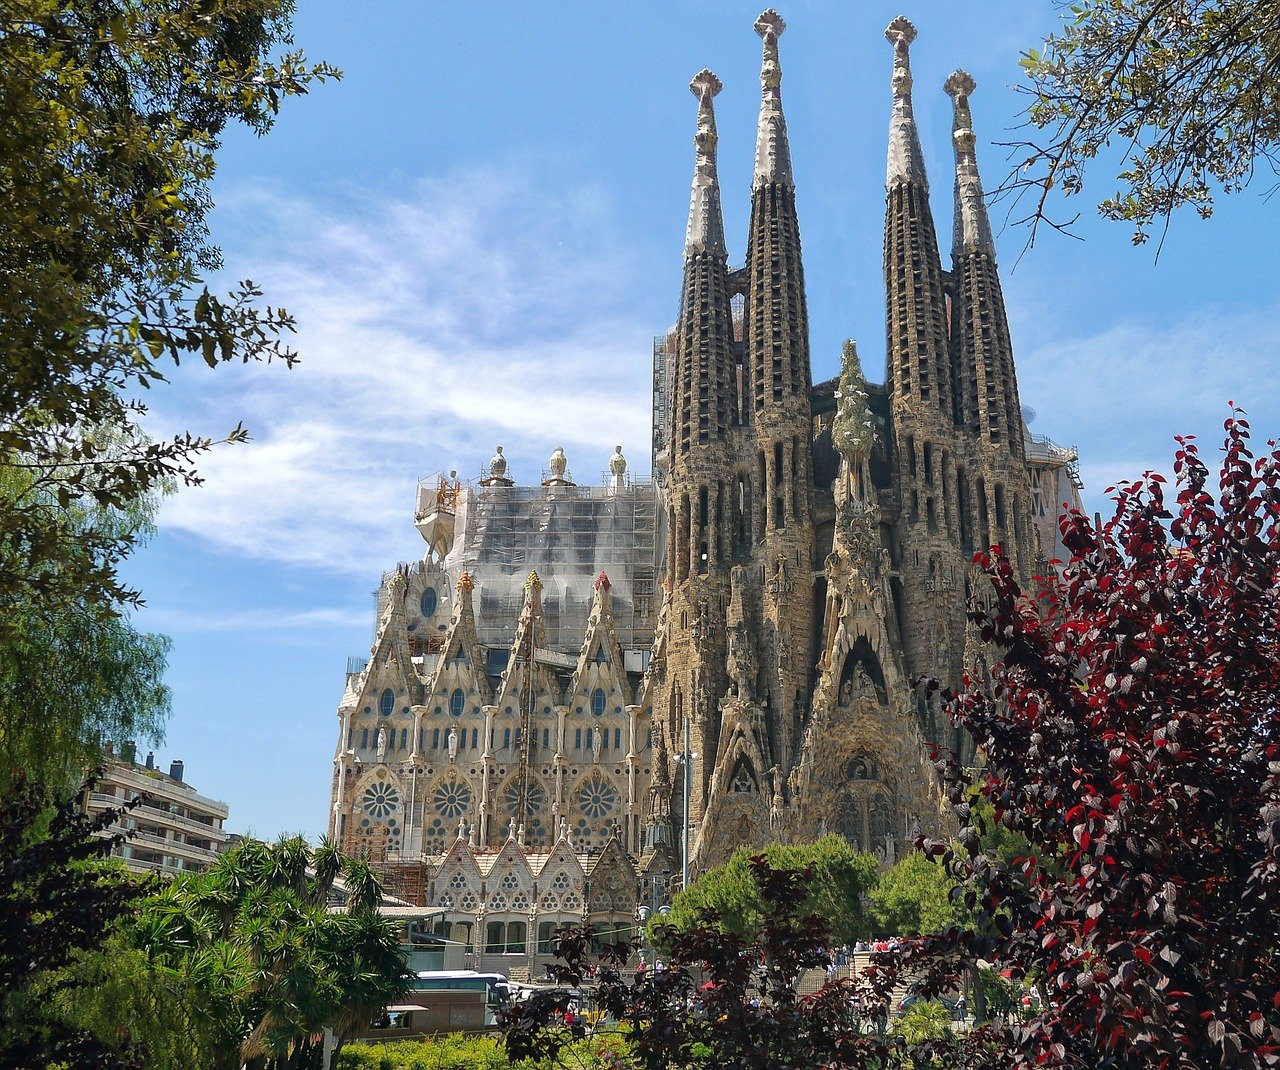 Barcelona Attractions - Sagrada Familia